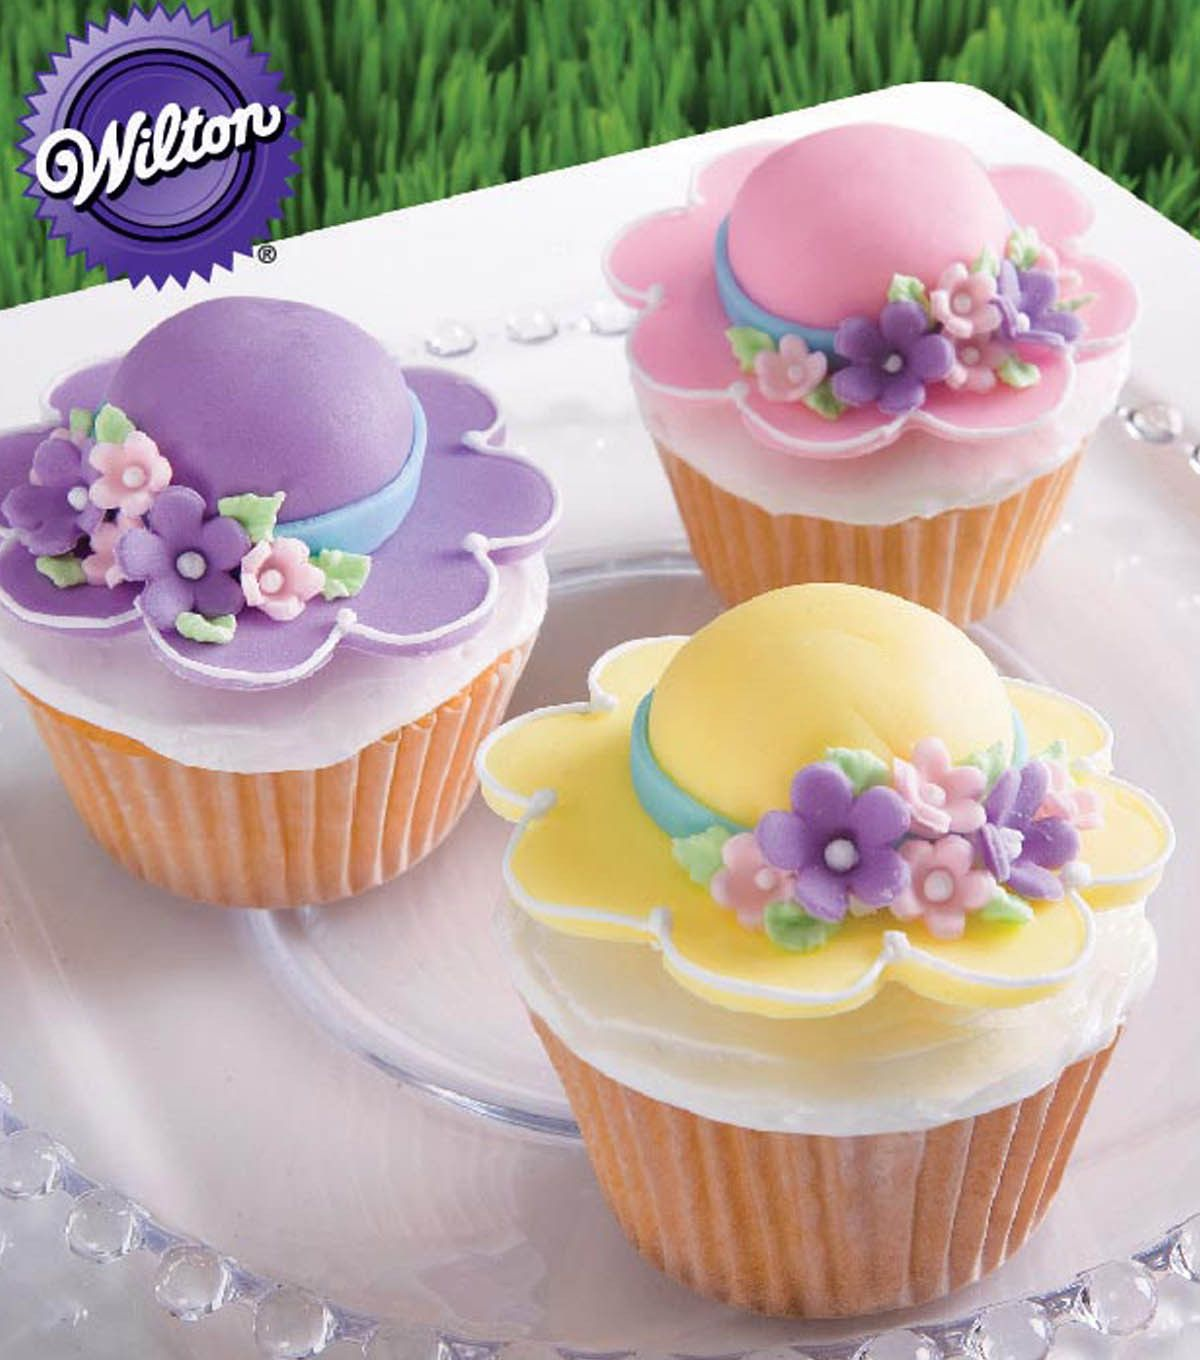 Cute Bonnet Cupcakes From Wilton Cake Decorating Cake